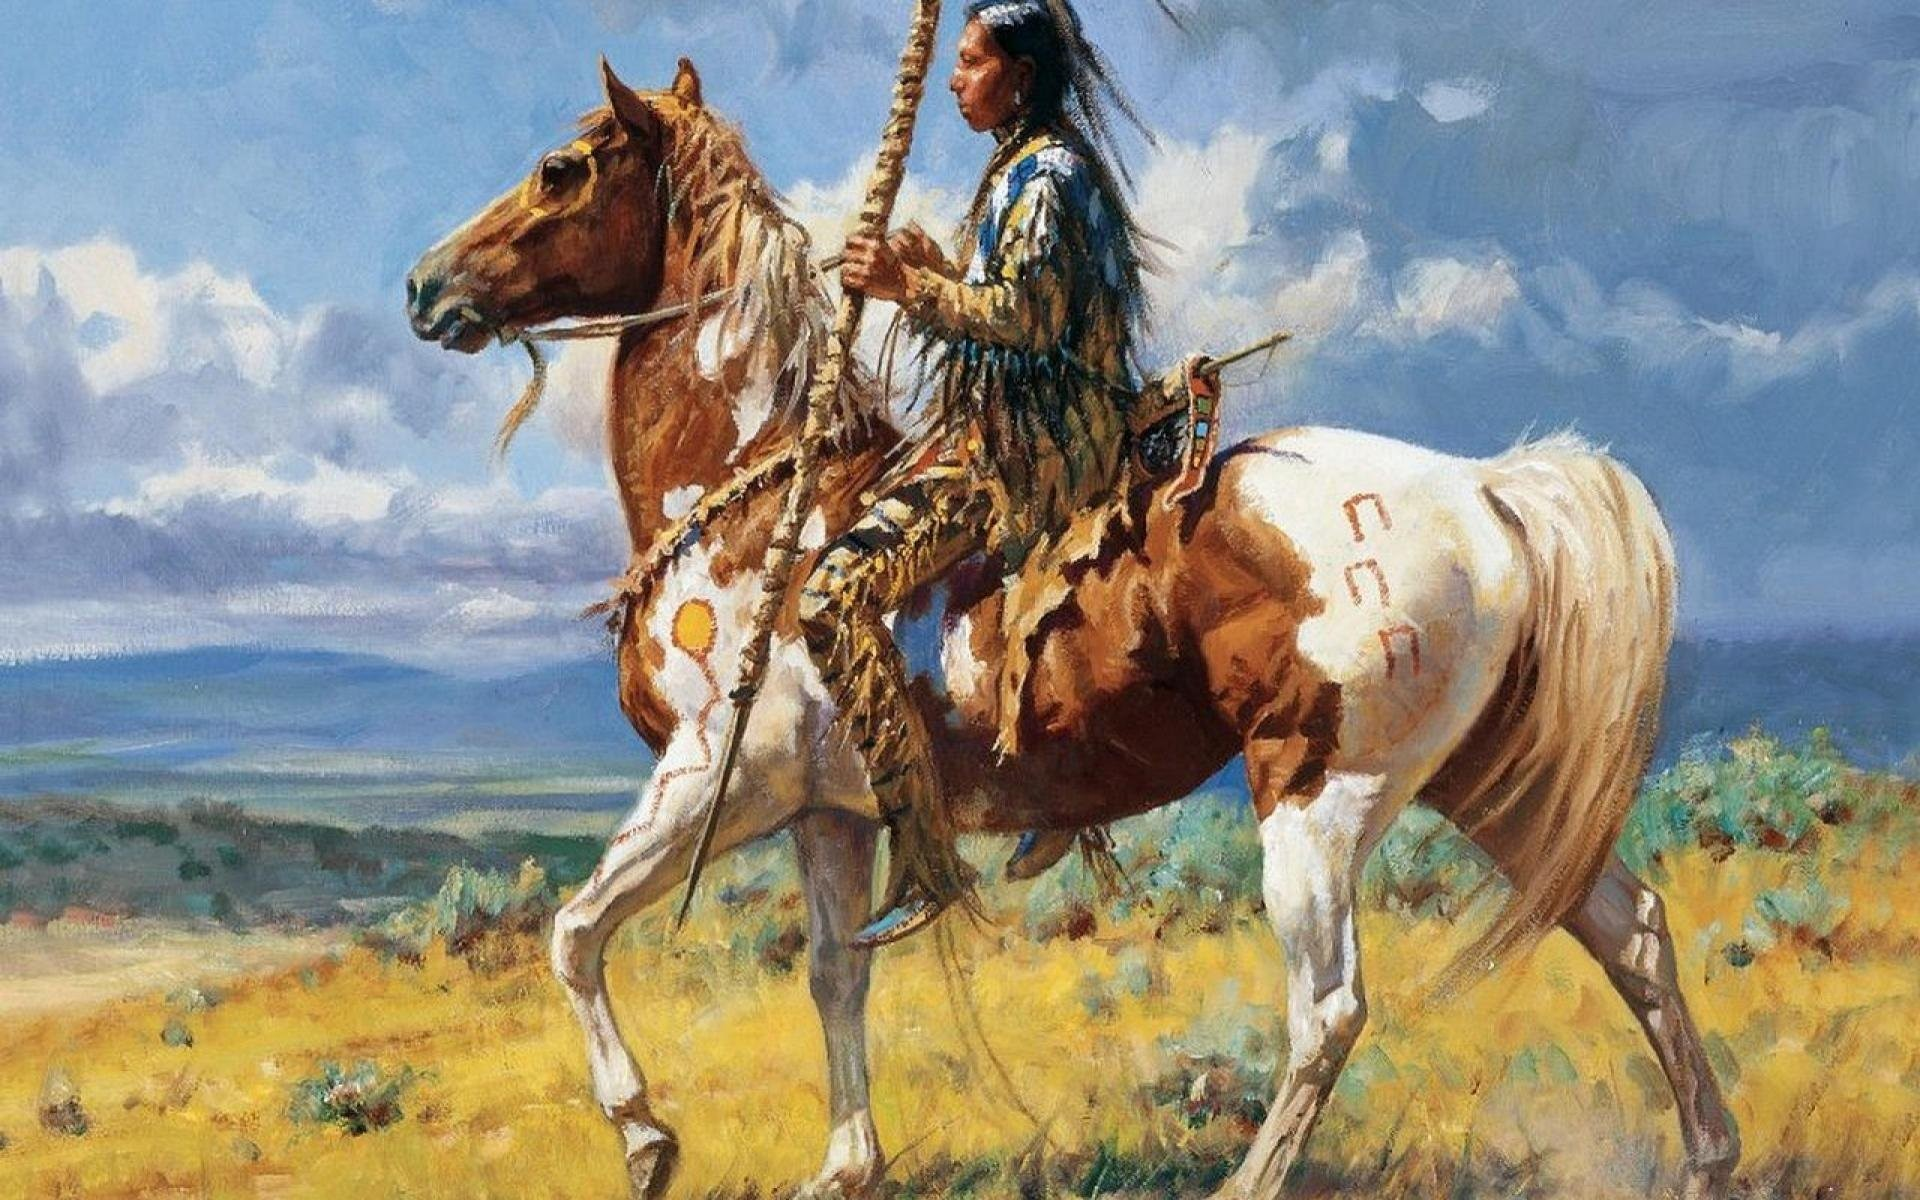 Res: 1920x1200, Native american indian western (53) wallpaper |  | 416409 |  WallpaperUP